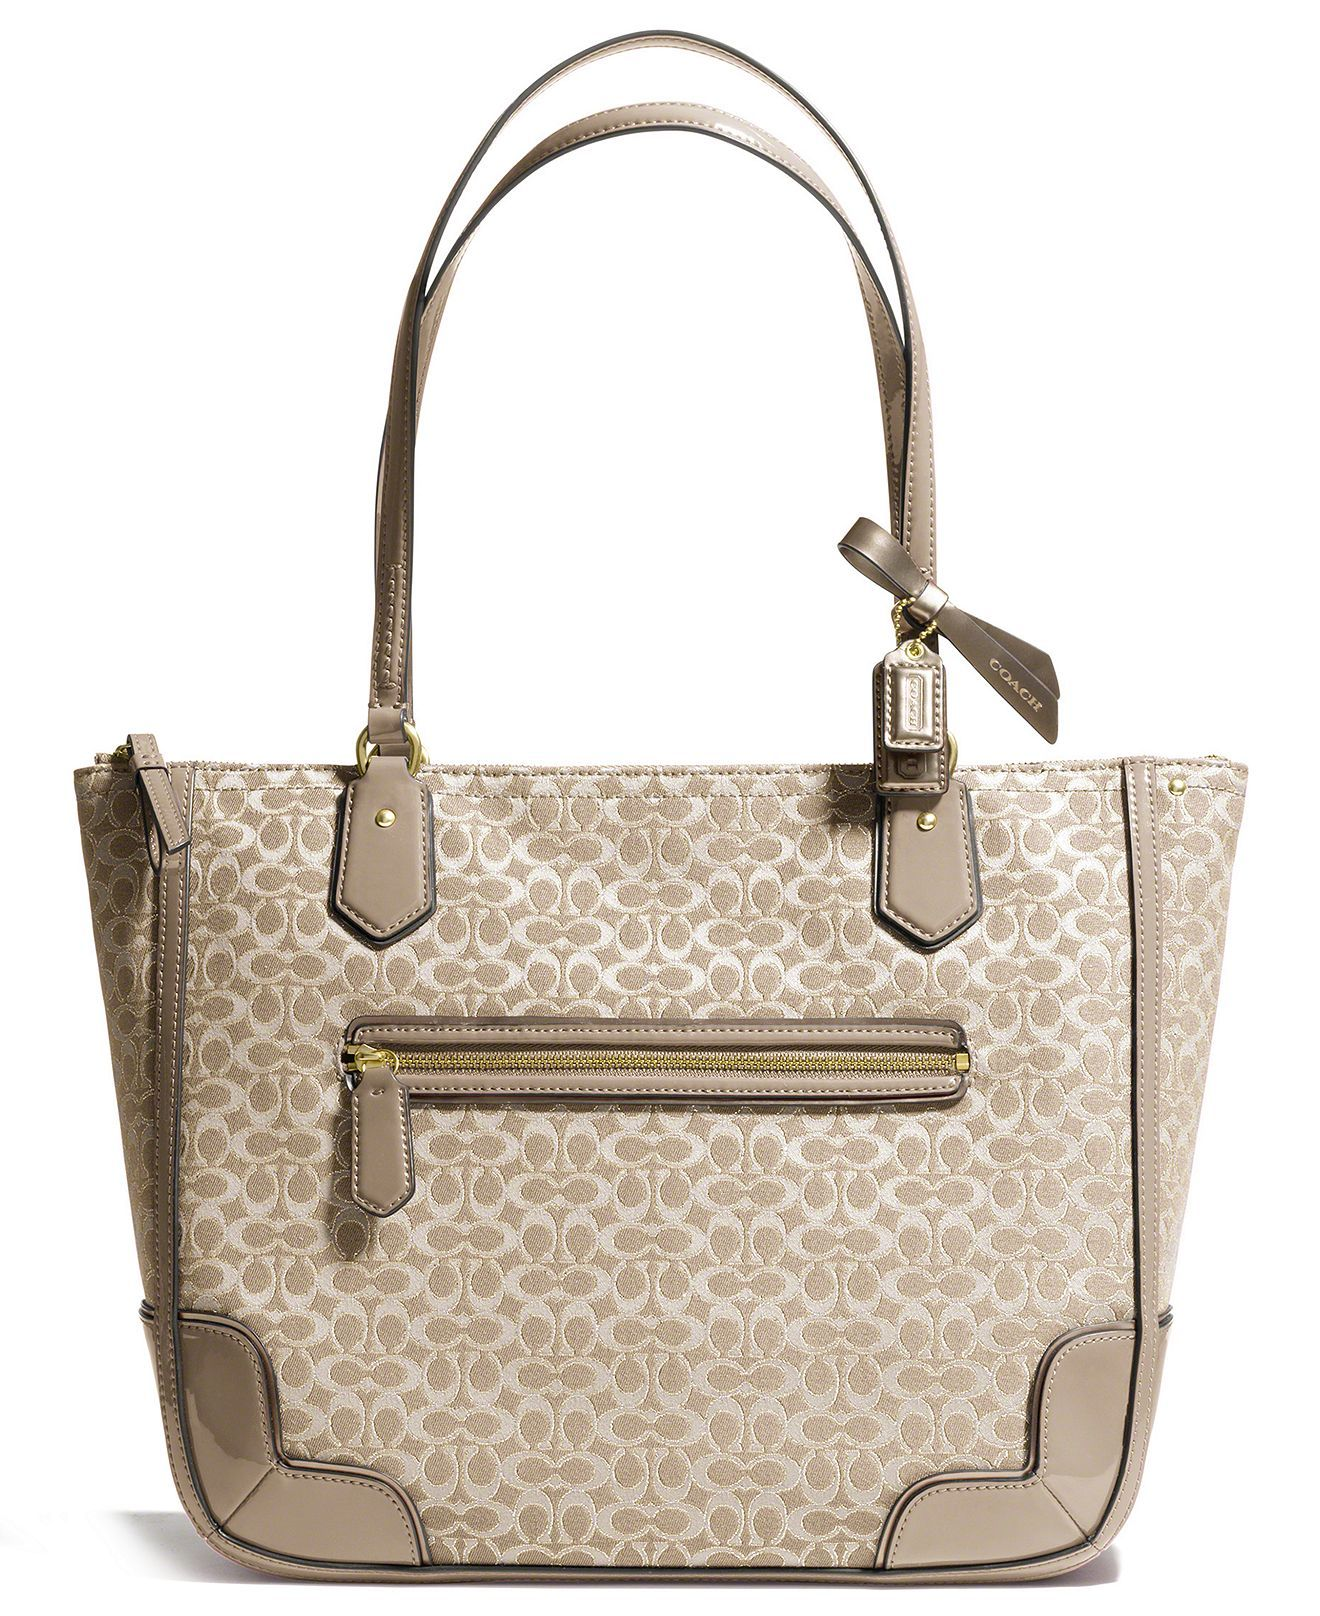 The Poppy Small Tote In Signature C Metallic Outline Fabric From Coach